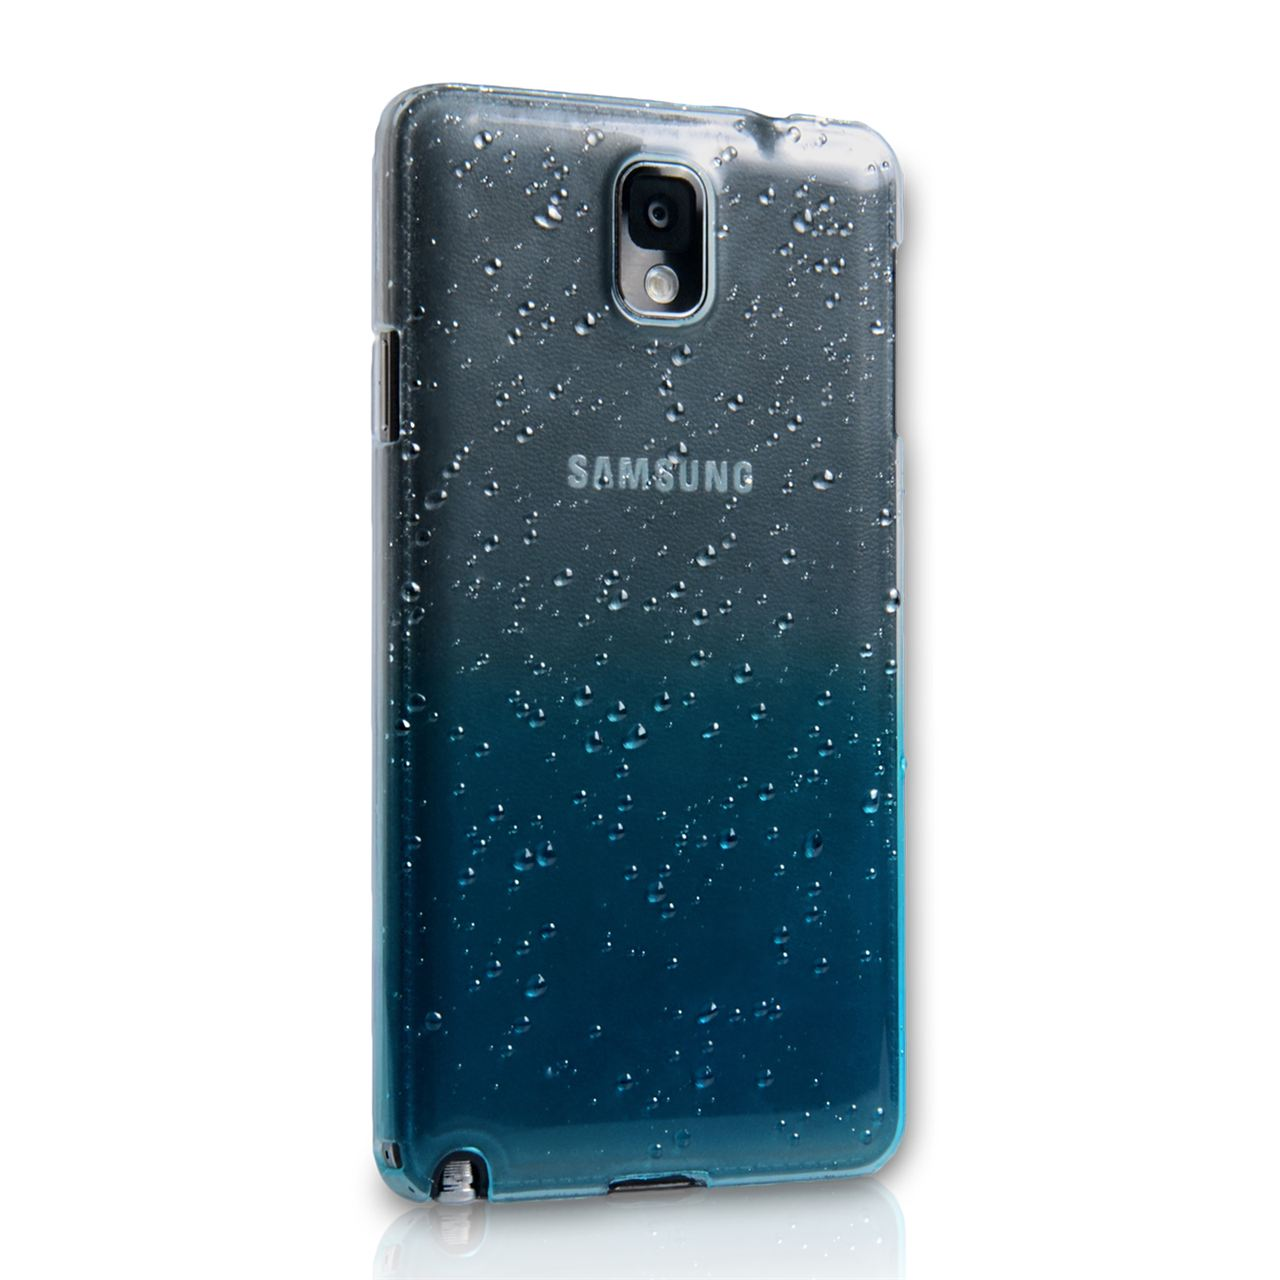 YouSave Accessories Samsung Galaxy Note 3 Waterdrop Hard Case - Blue